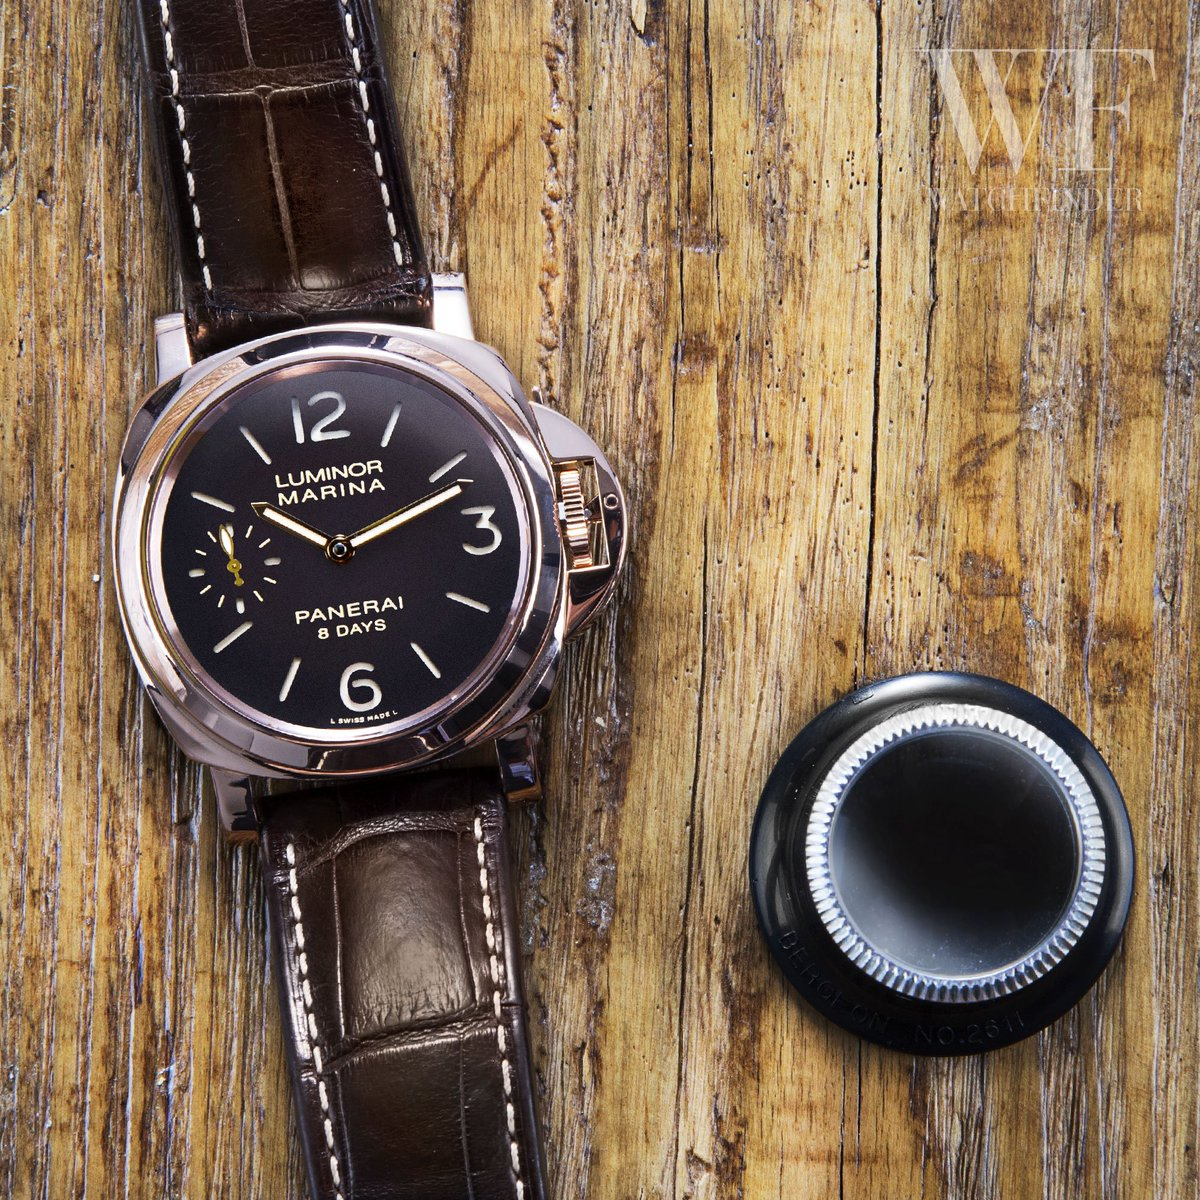 It's Sunday! Meaning you have time to inspect this Panerai a little closer https://t.co/igJhKFhY0O https://t.co/RXNIHlRoN2